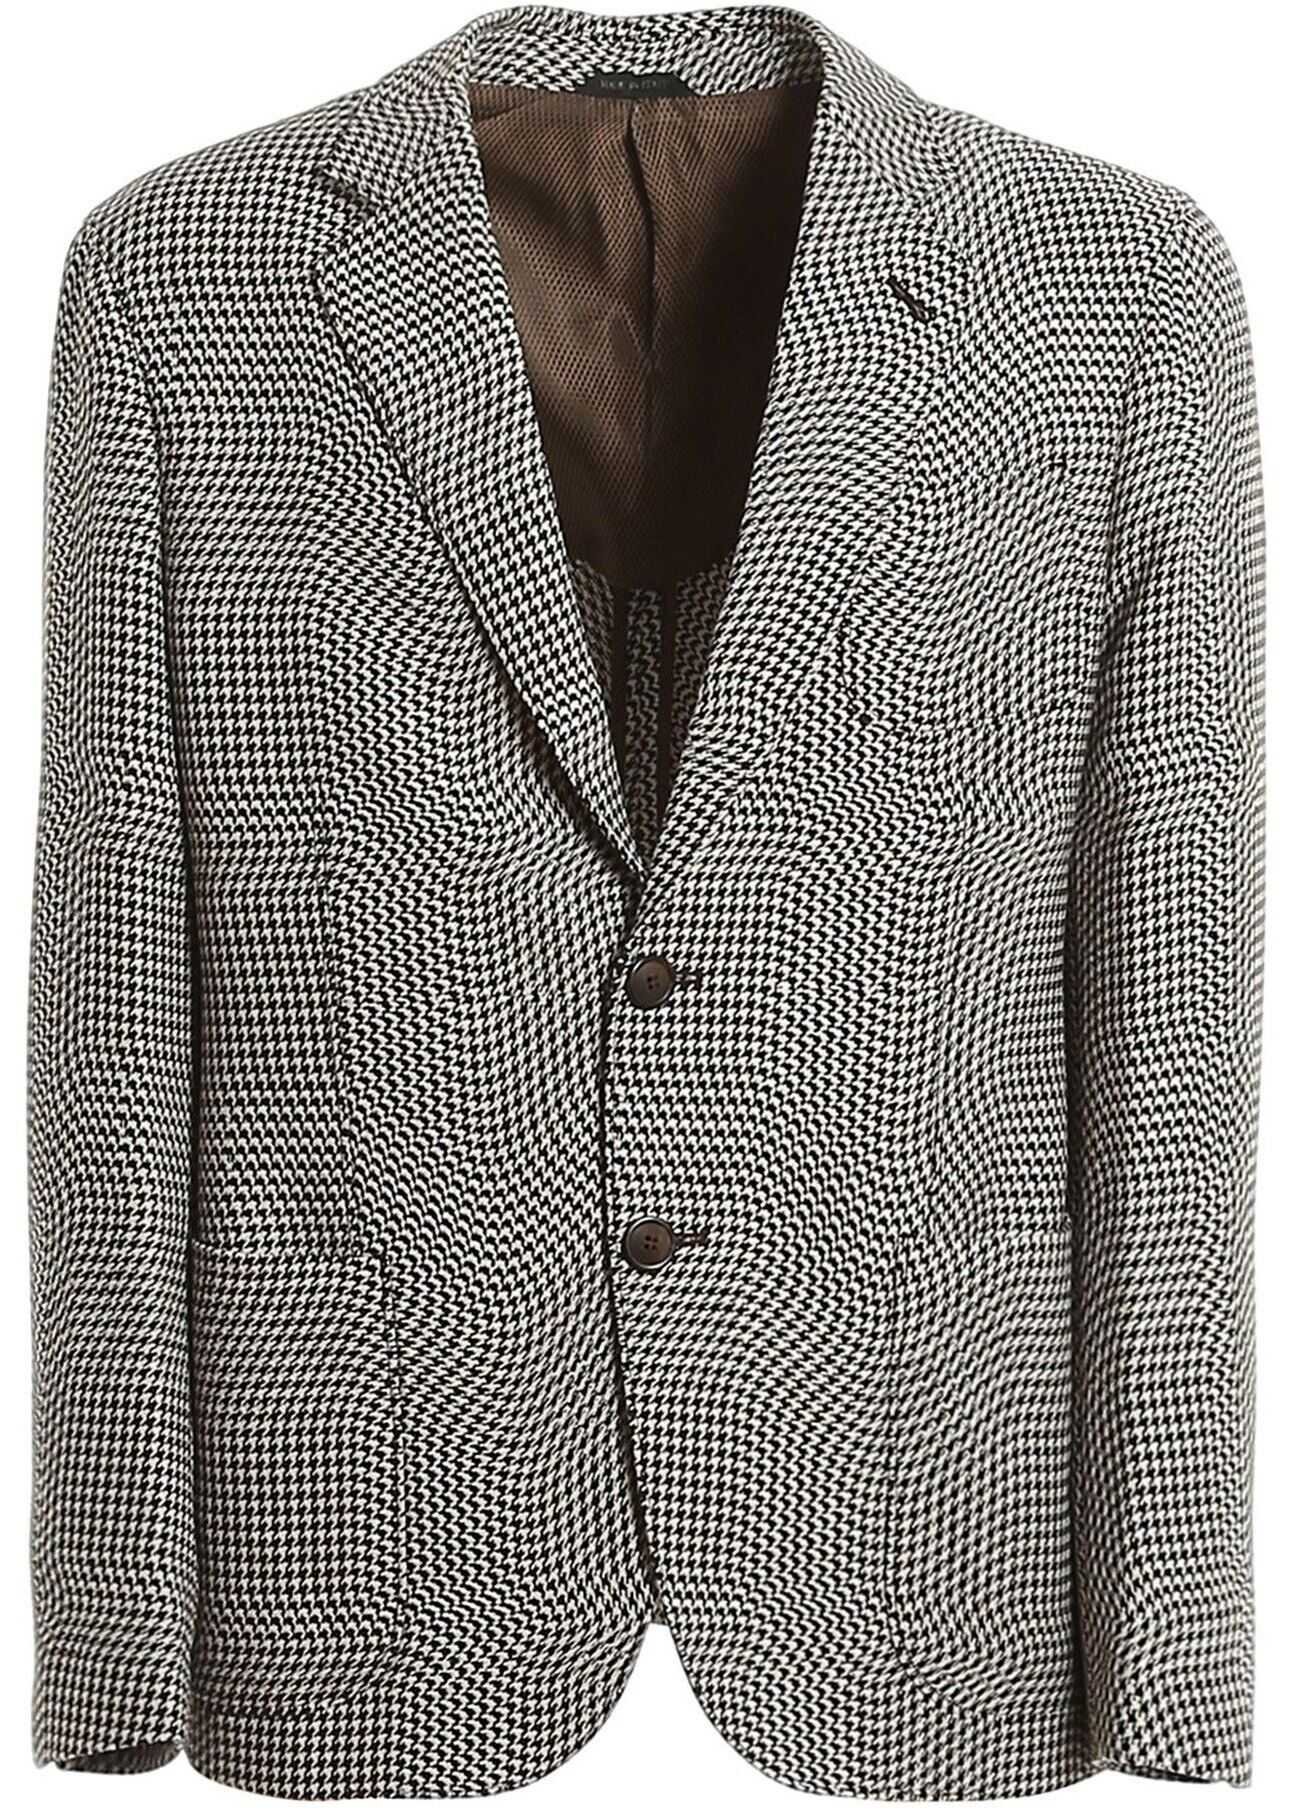 Giorgio Armani Houndstooth Patterned Blazer In Brown Brown imagine